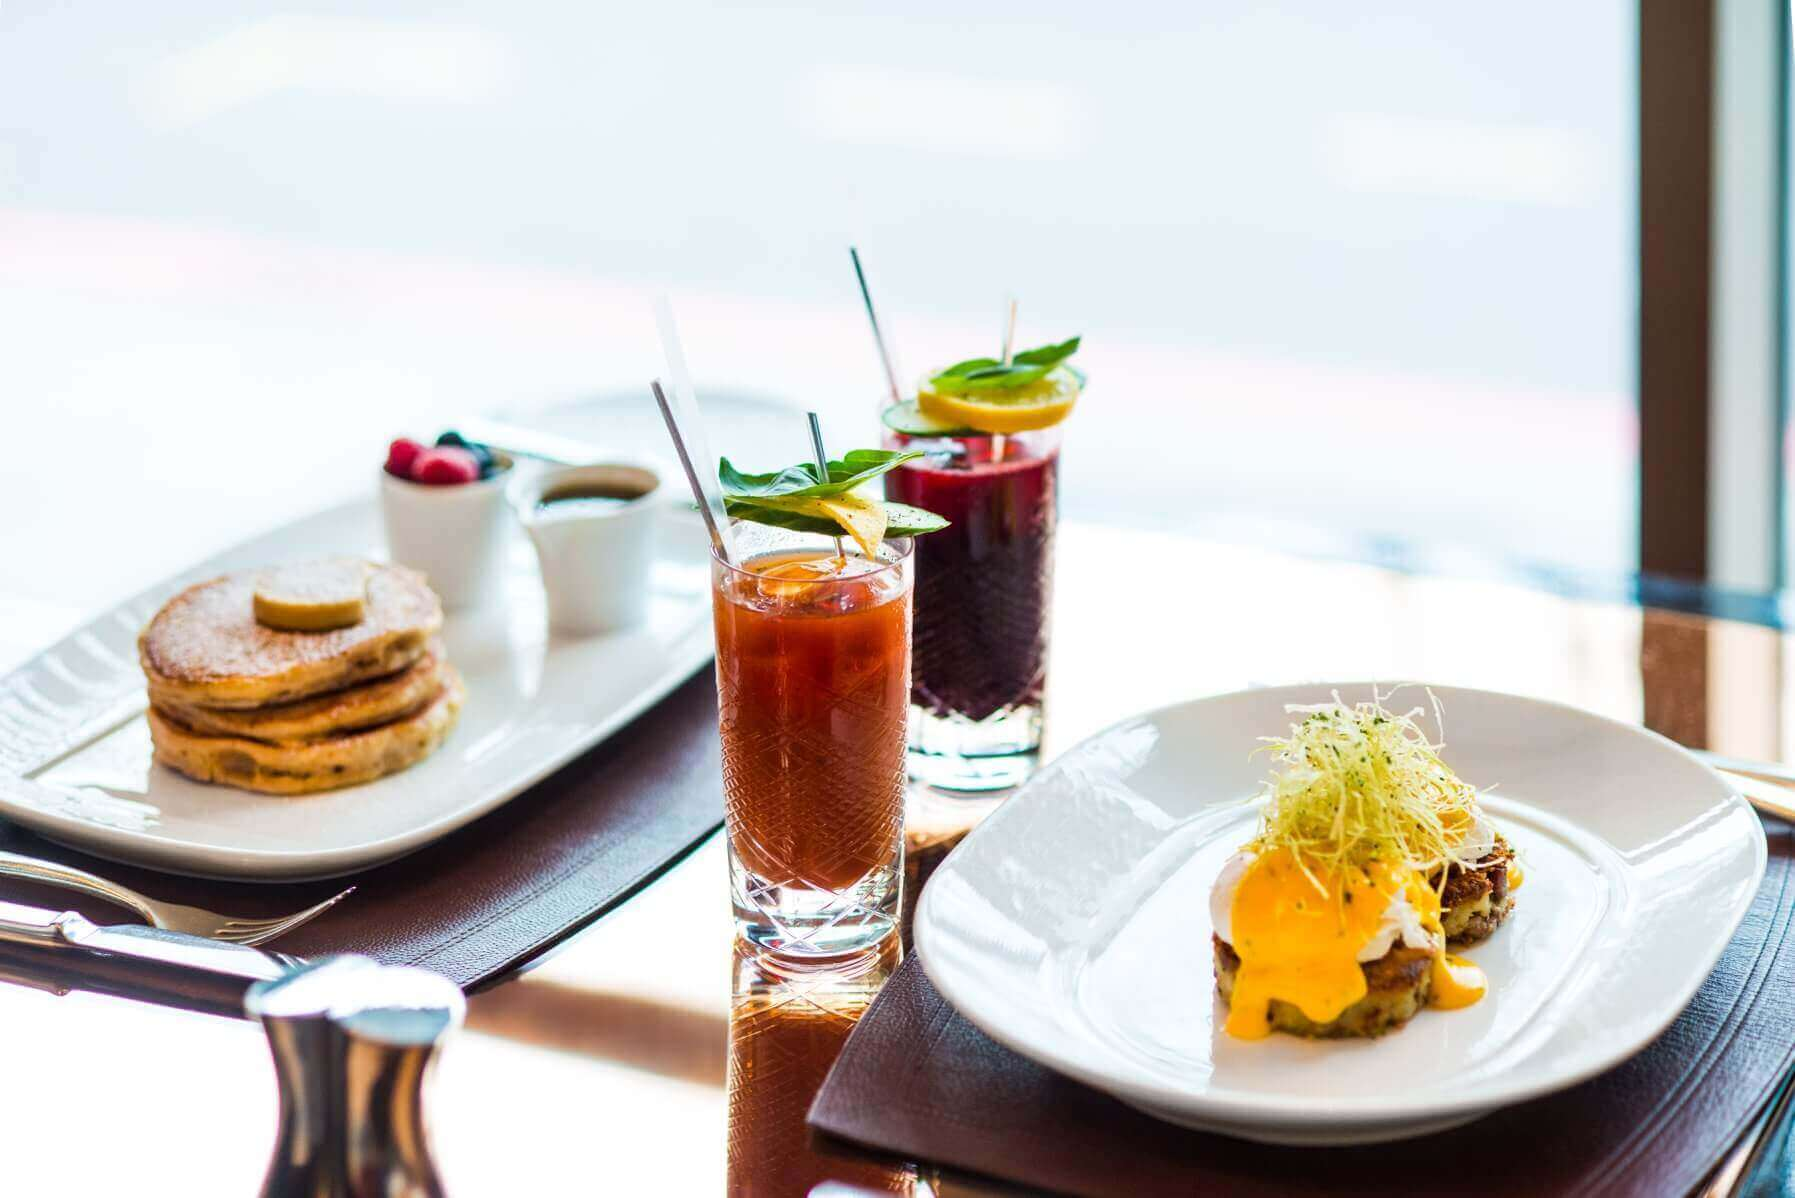 CUT at 45, Park Lane, Luxury Brunch, Luxury Breakfast, Brunch in Mayfair, 5* Hotel